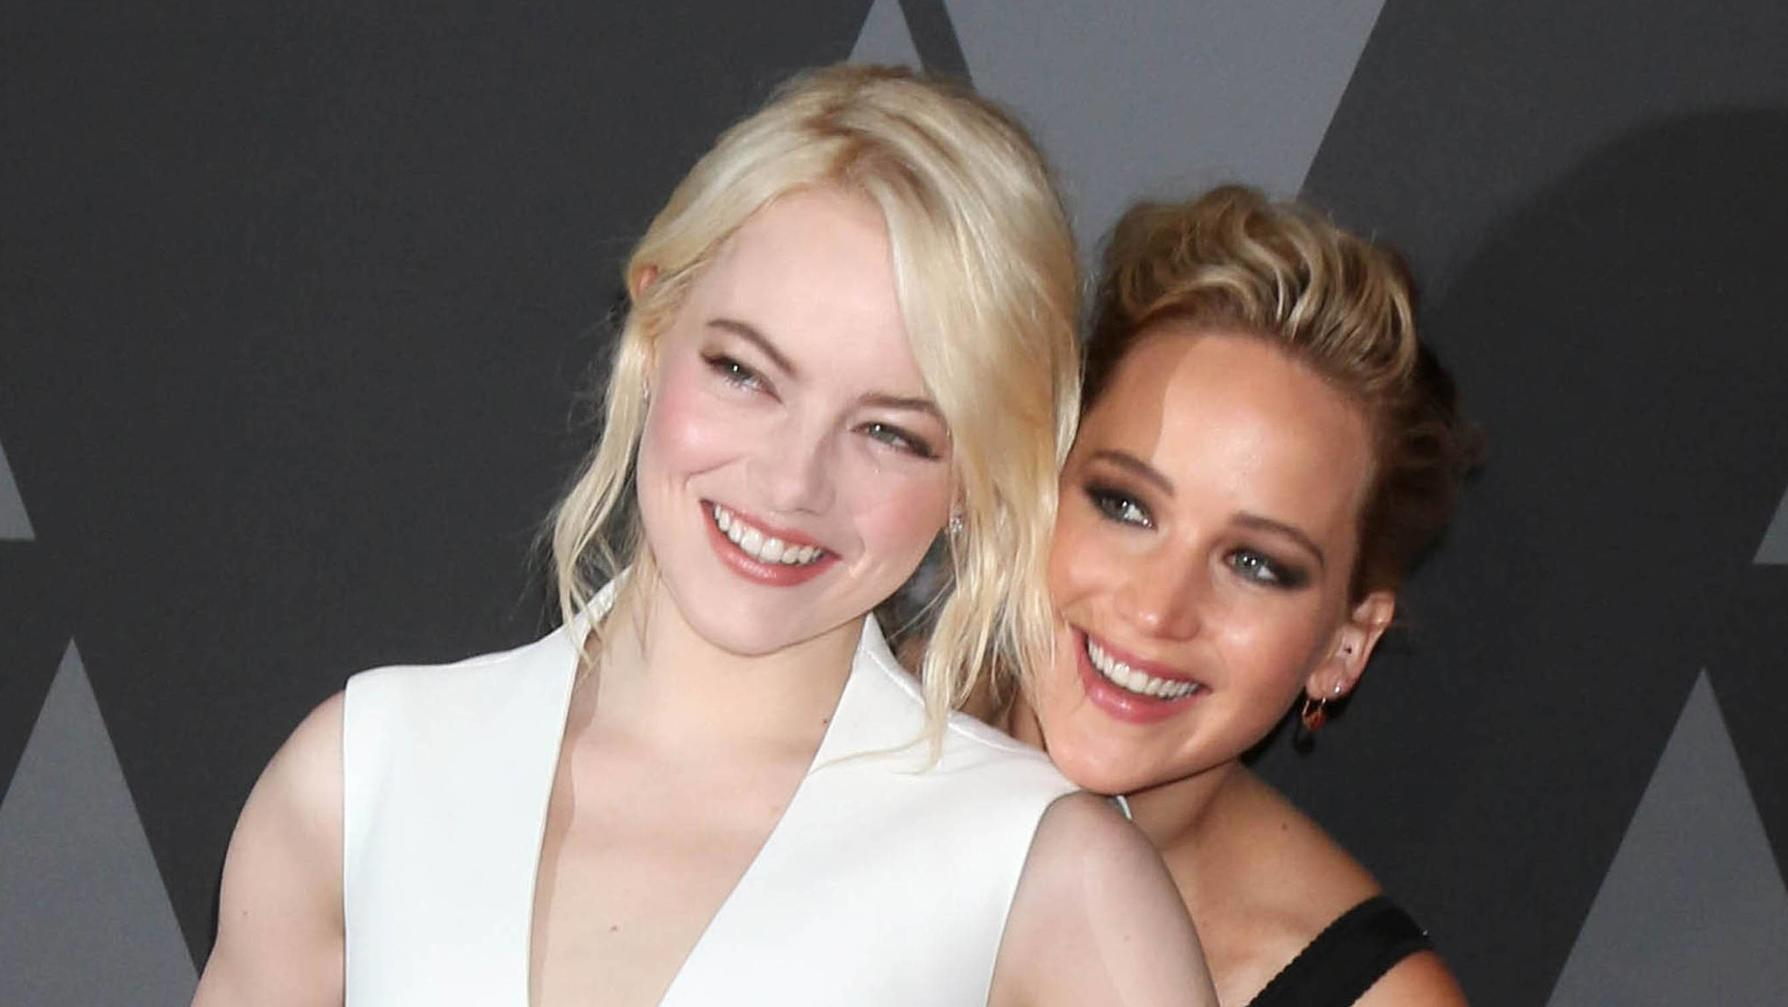 HOLLYWOOD CA NOVEMBER 11 Emma Stone Jennifer Lawrence at the AMPAS 9th Annual Governors Awards at the Dolby Ballroom in Hollywood California on November 11 2017 PUBLICATIONxINxGERxSUIxAUTxONLY Copyright: xDavidxEdwardsx